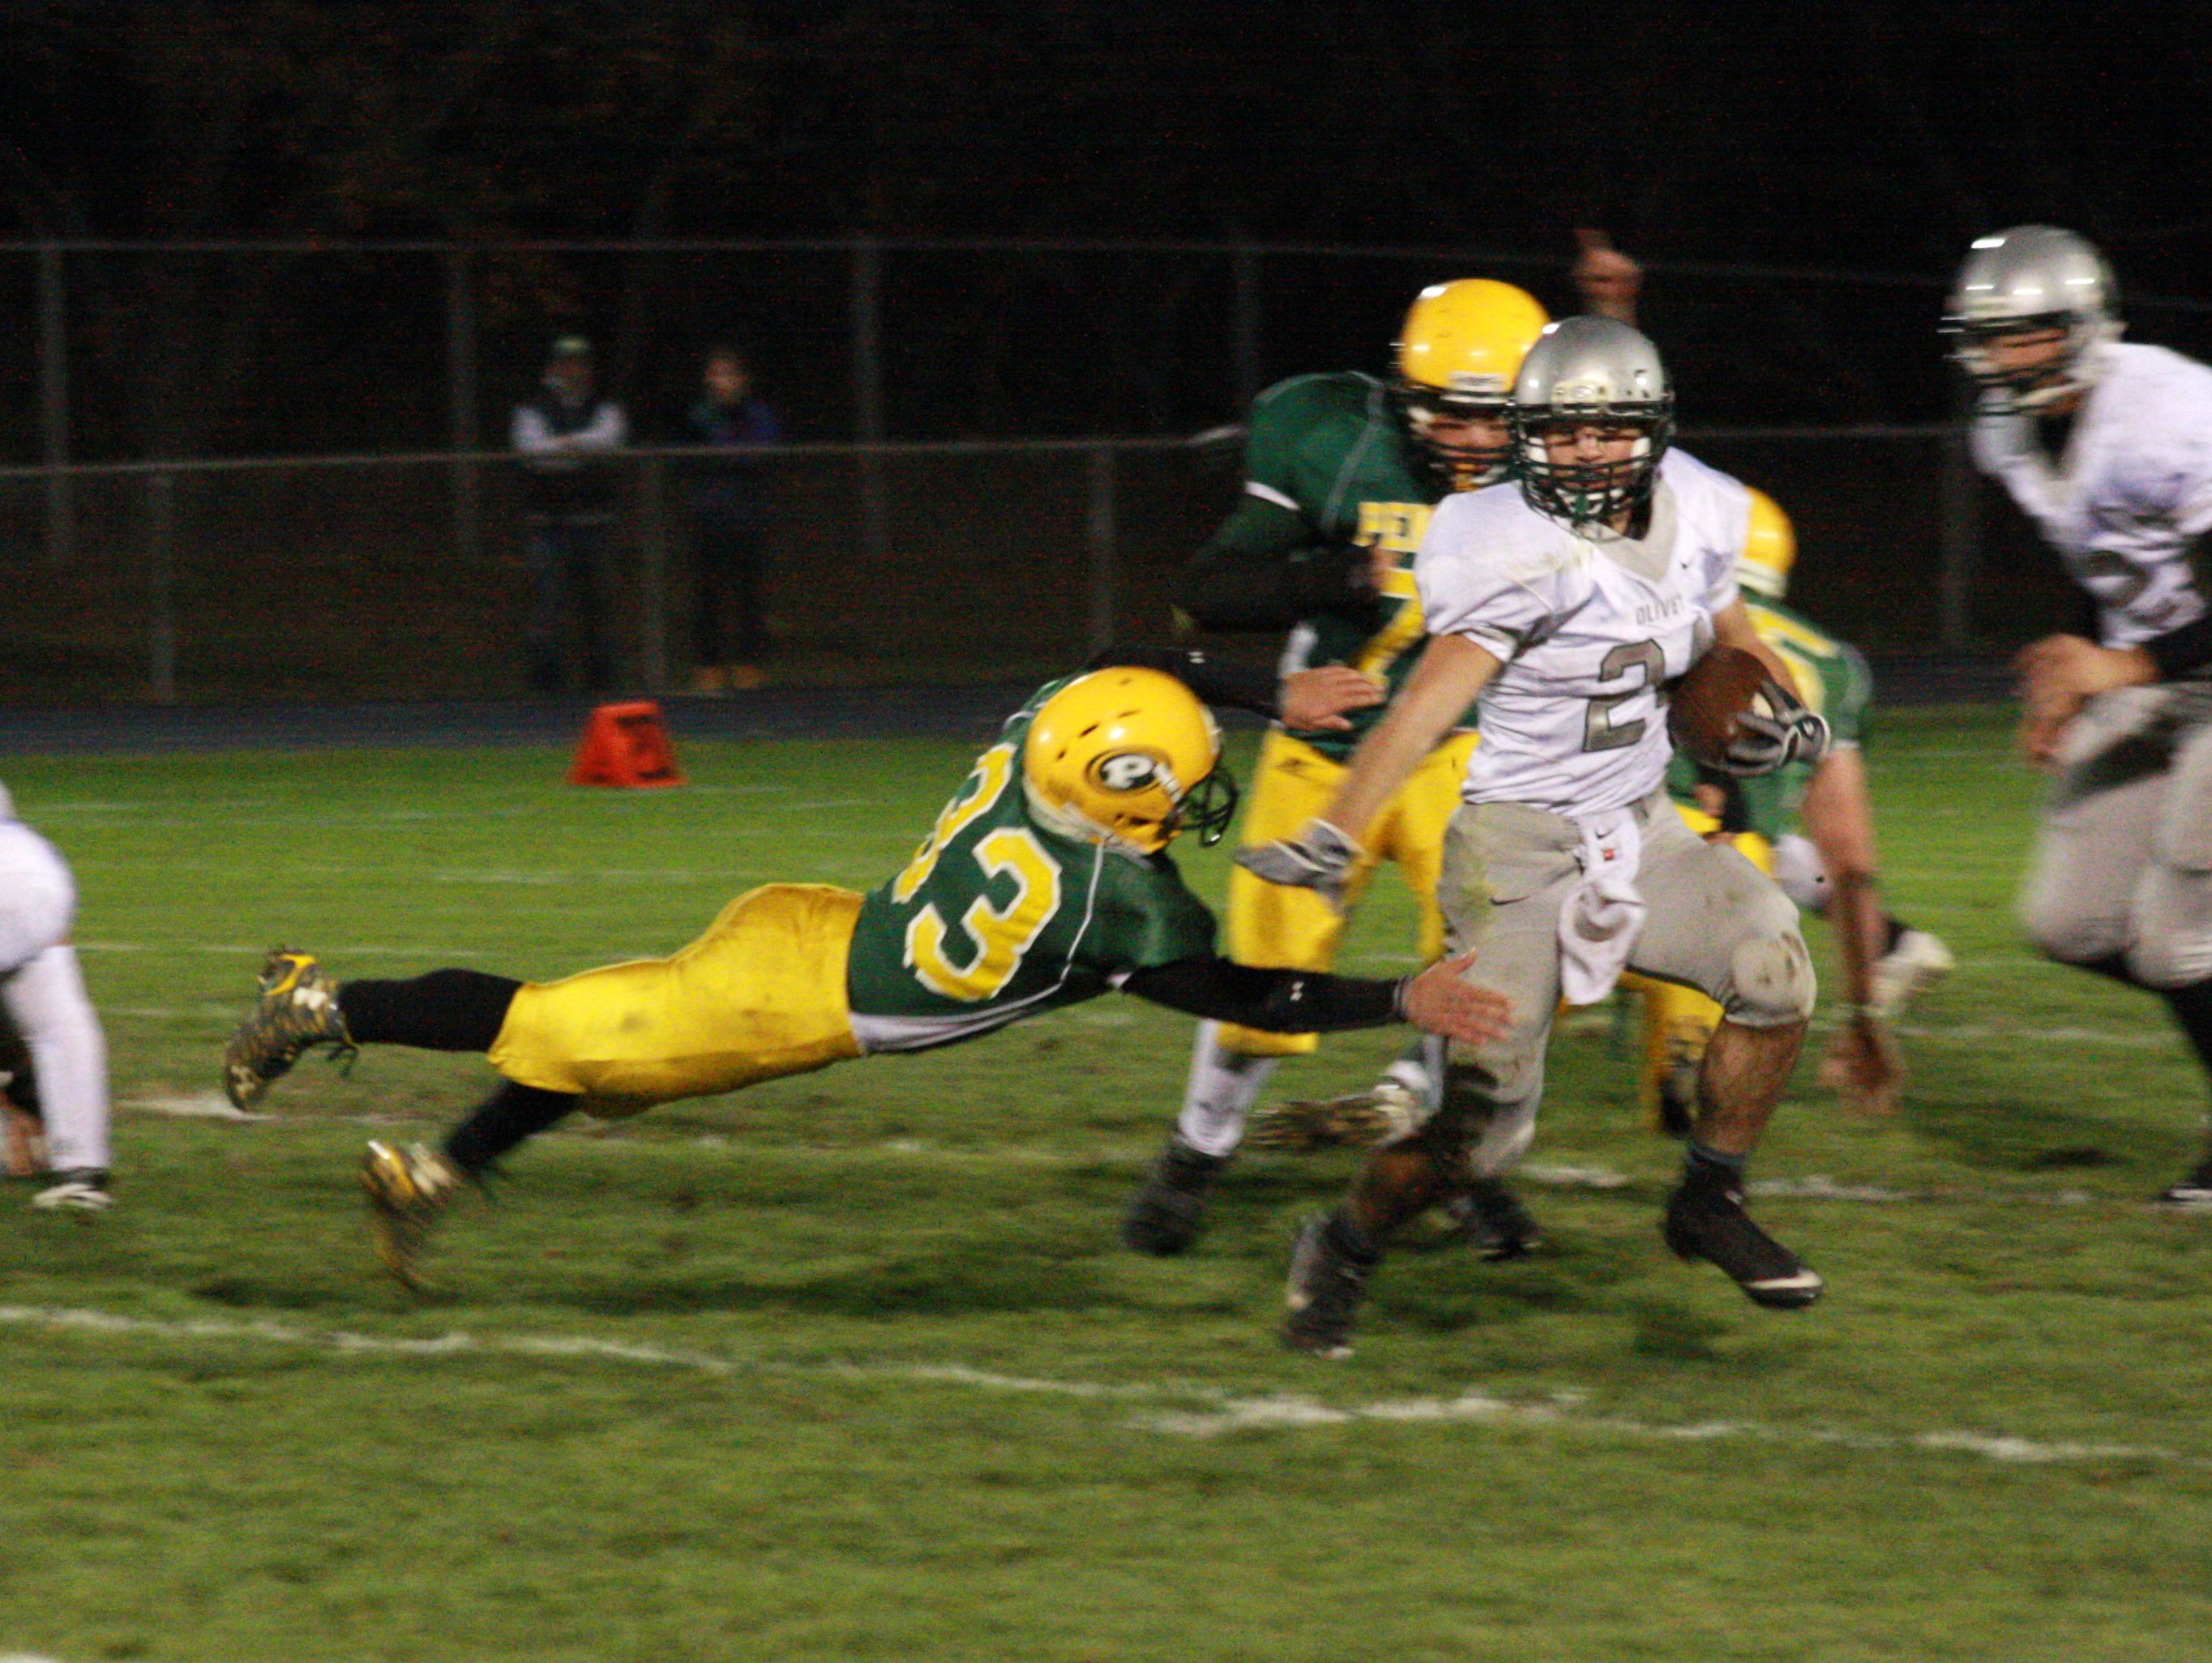 Olivet High School Senior, Chase Martin runs past Pennfield defender, Michael Davis, to score a touchdown during Friday night's game at Pennfield High School